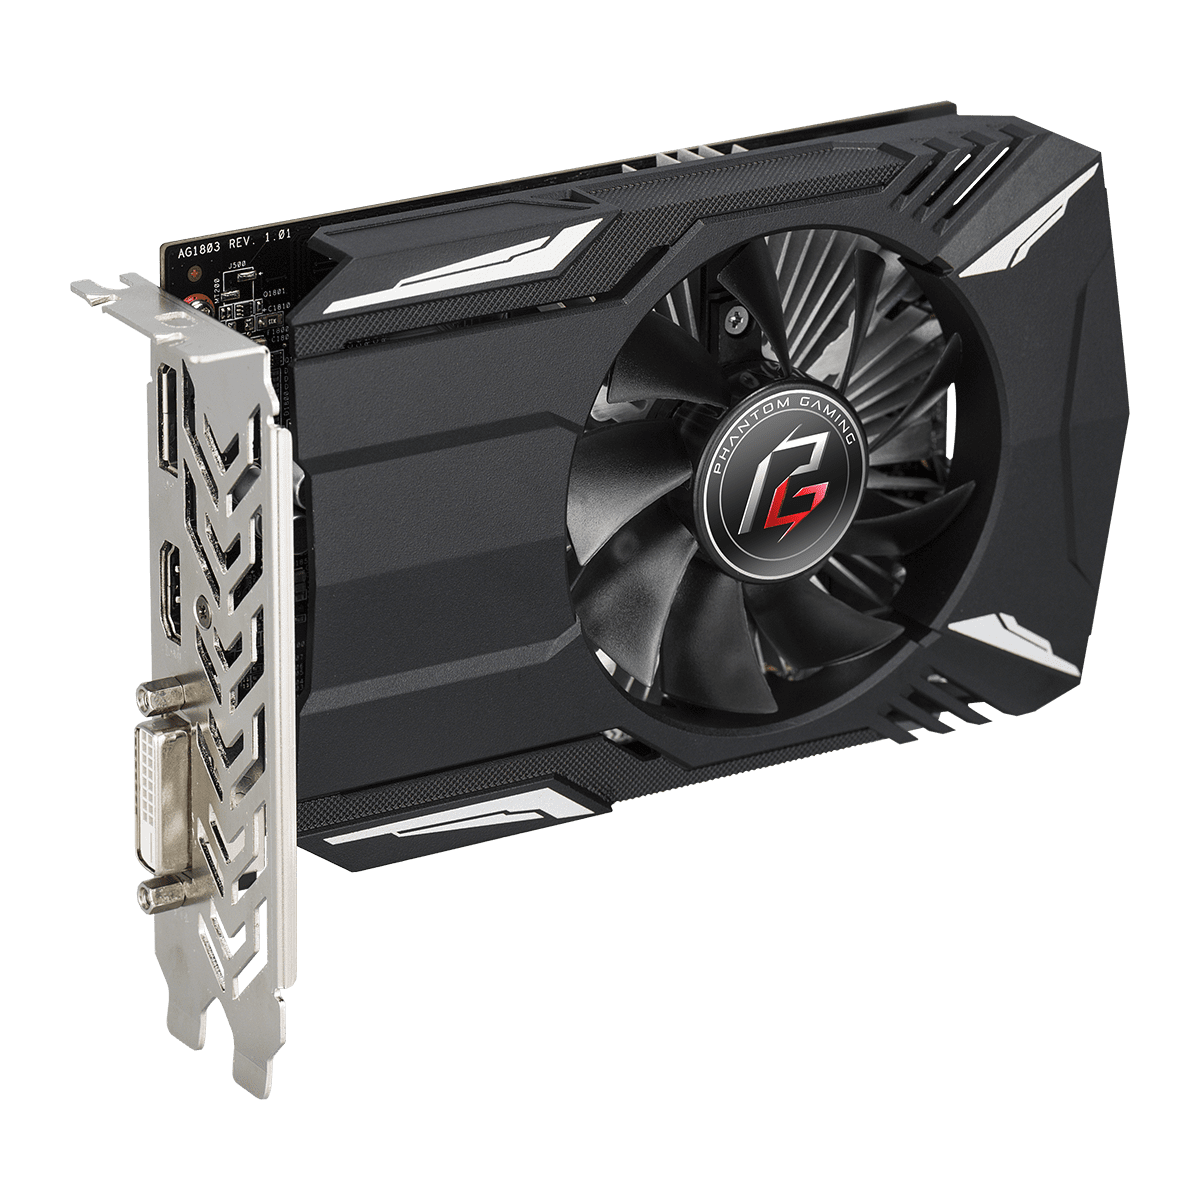 Placa de Vídeo ASRock Phantom Gaming Radeon RX 550, 2GB, GDDR5, 128bit, 90-GA0500-00UANF